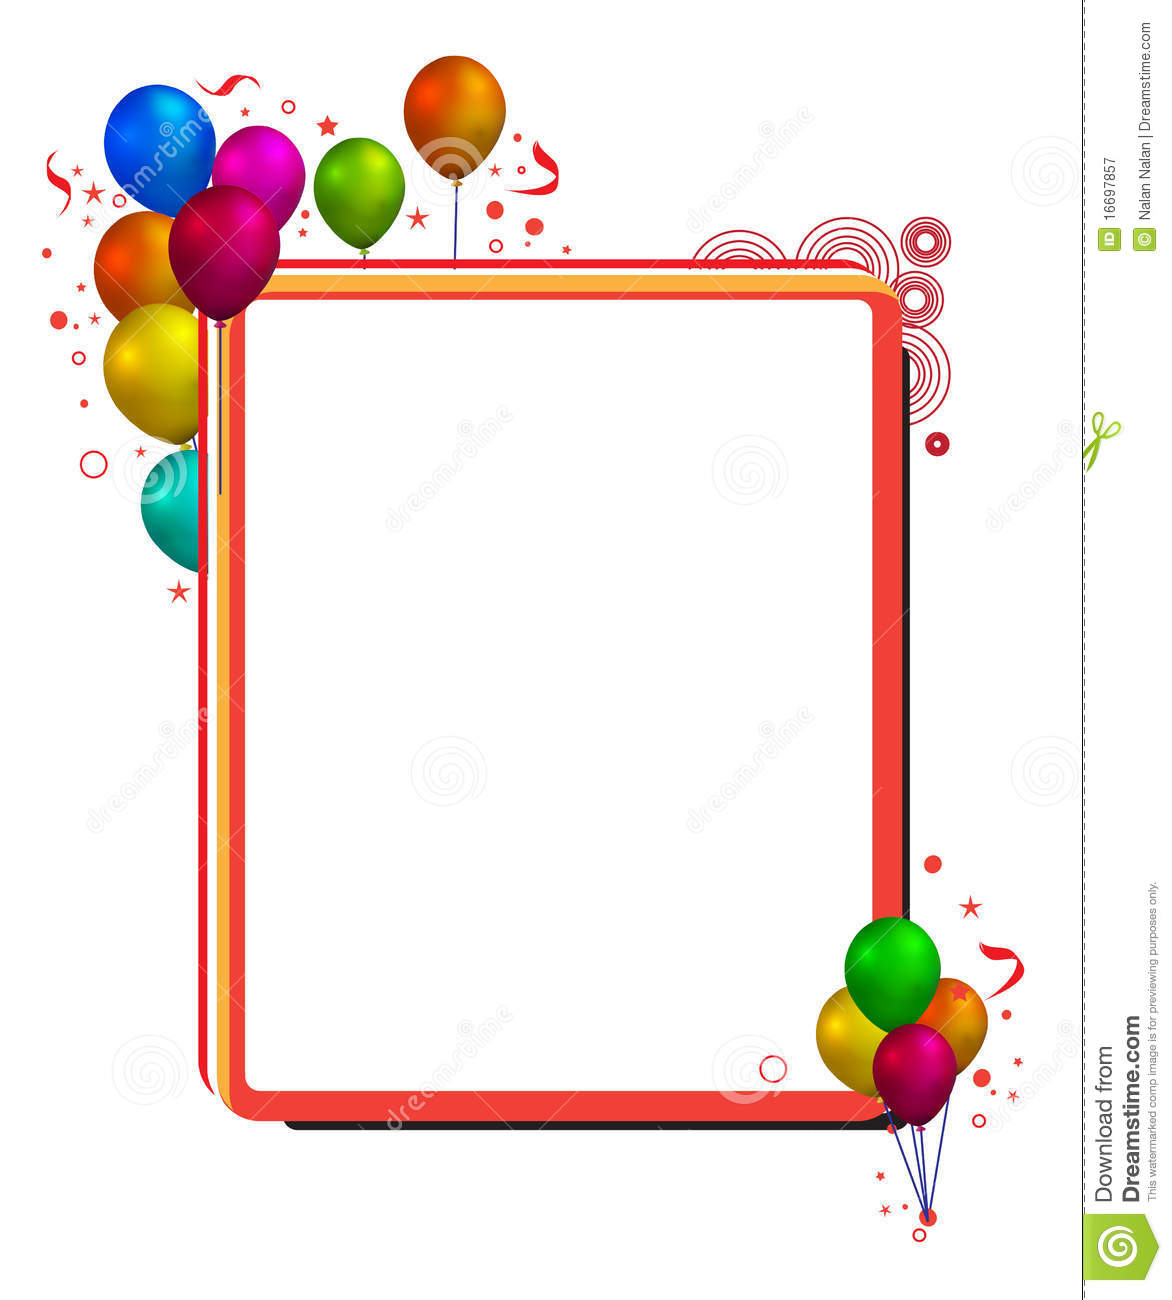 Balloon frame royalty free stock photography image 16697857